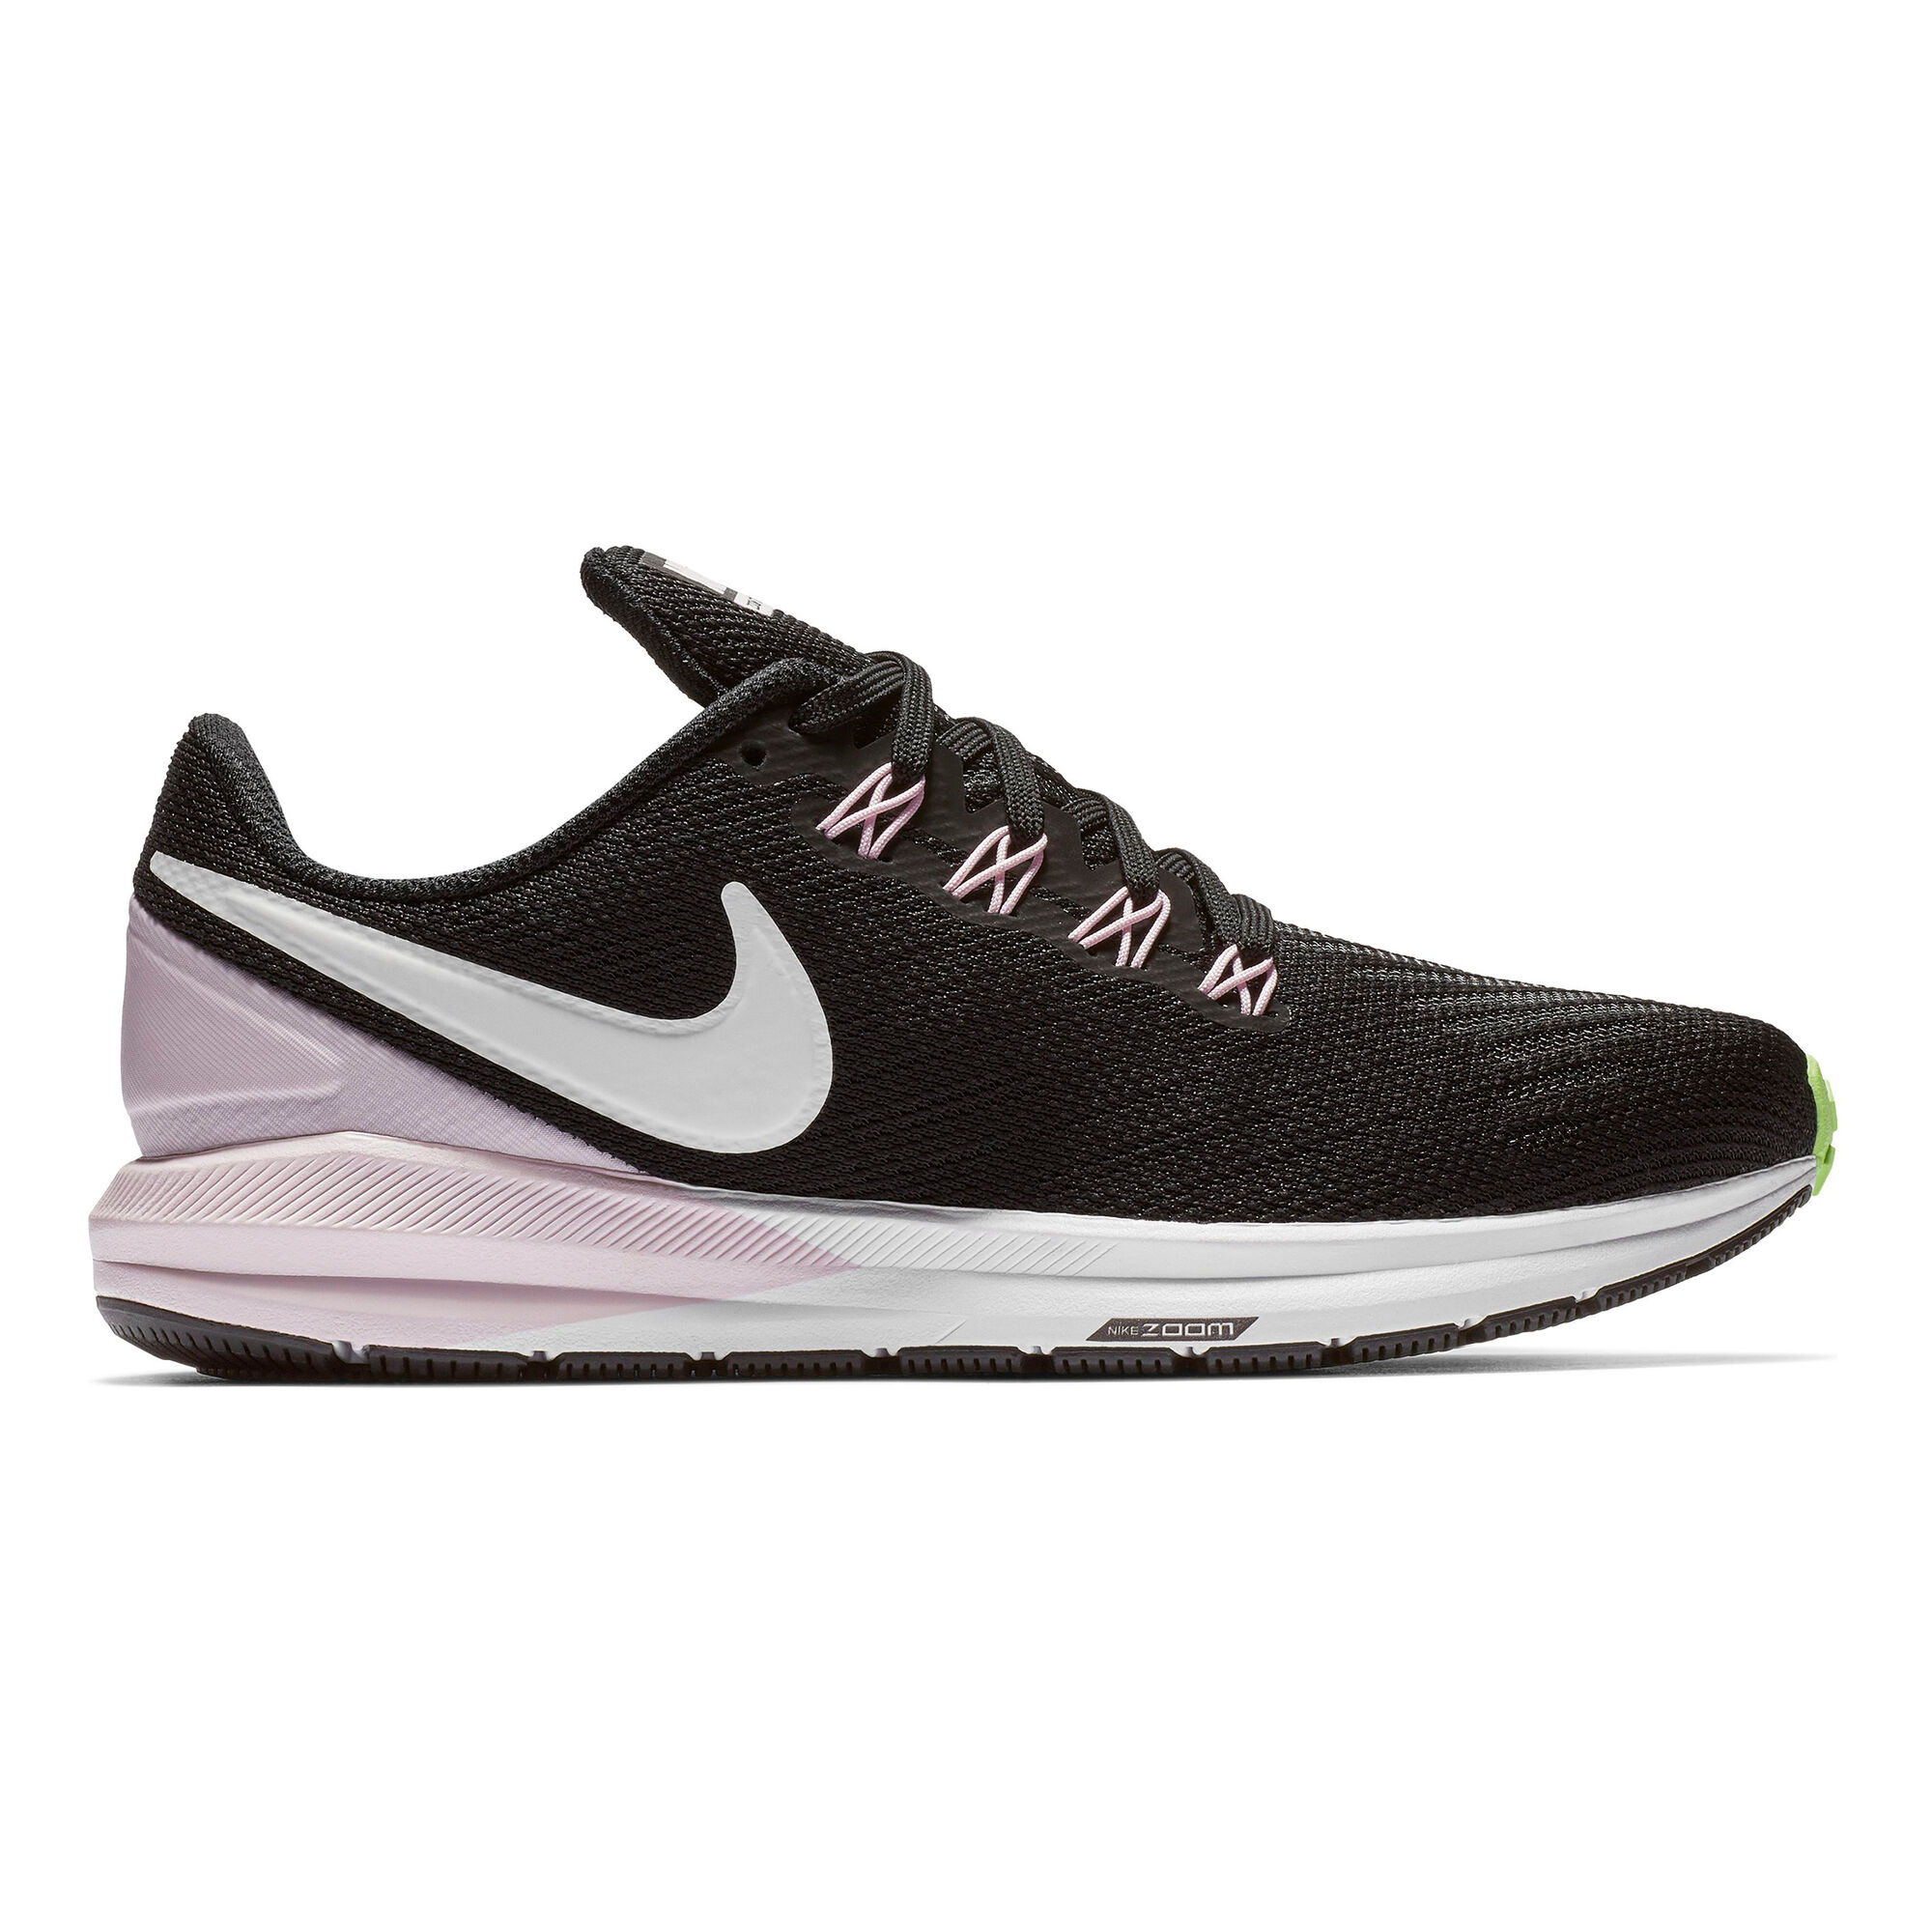 05c6c07117b802 buy Nike Air Zoom Structure 22 Stability Running Shoe Women - Black ...